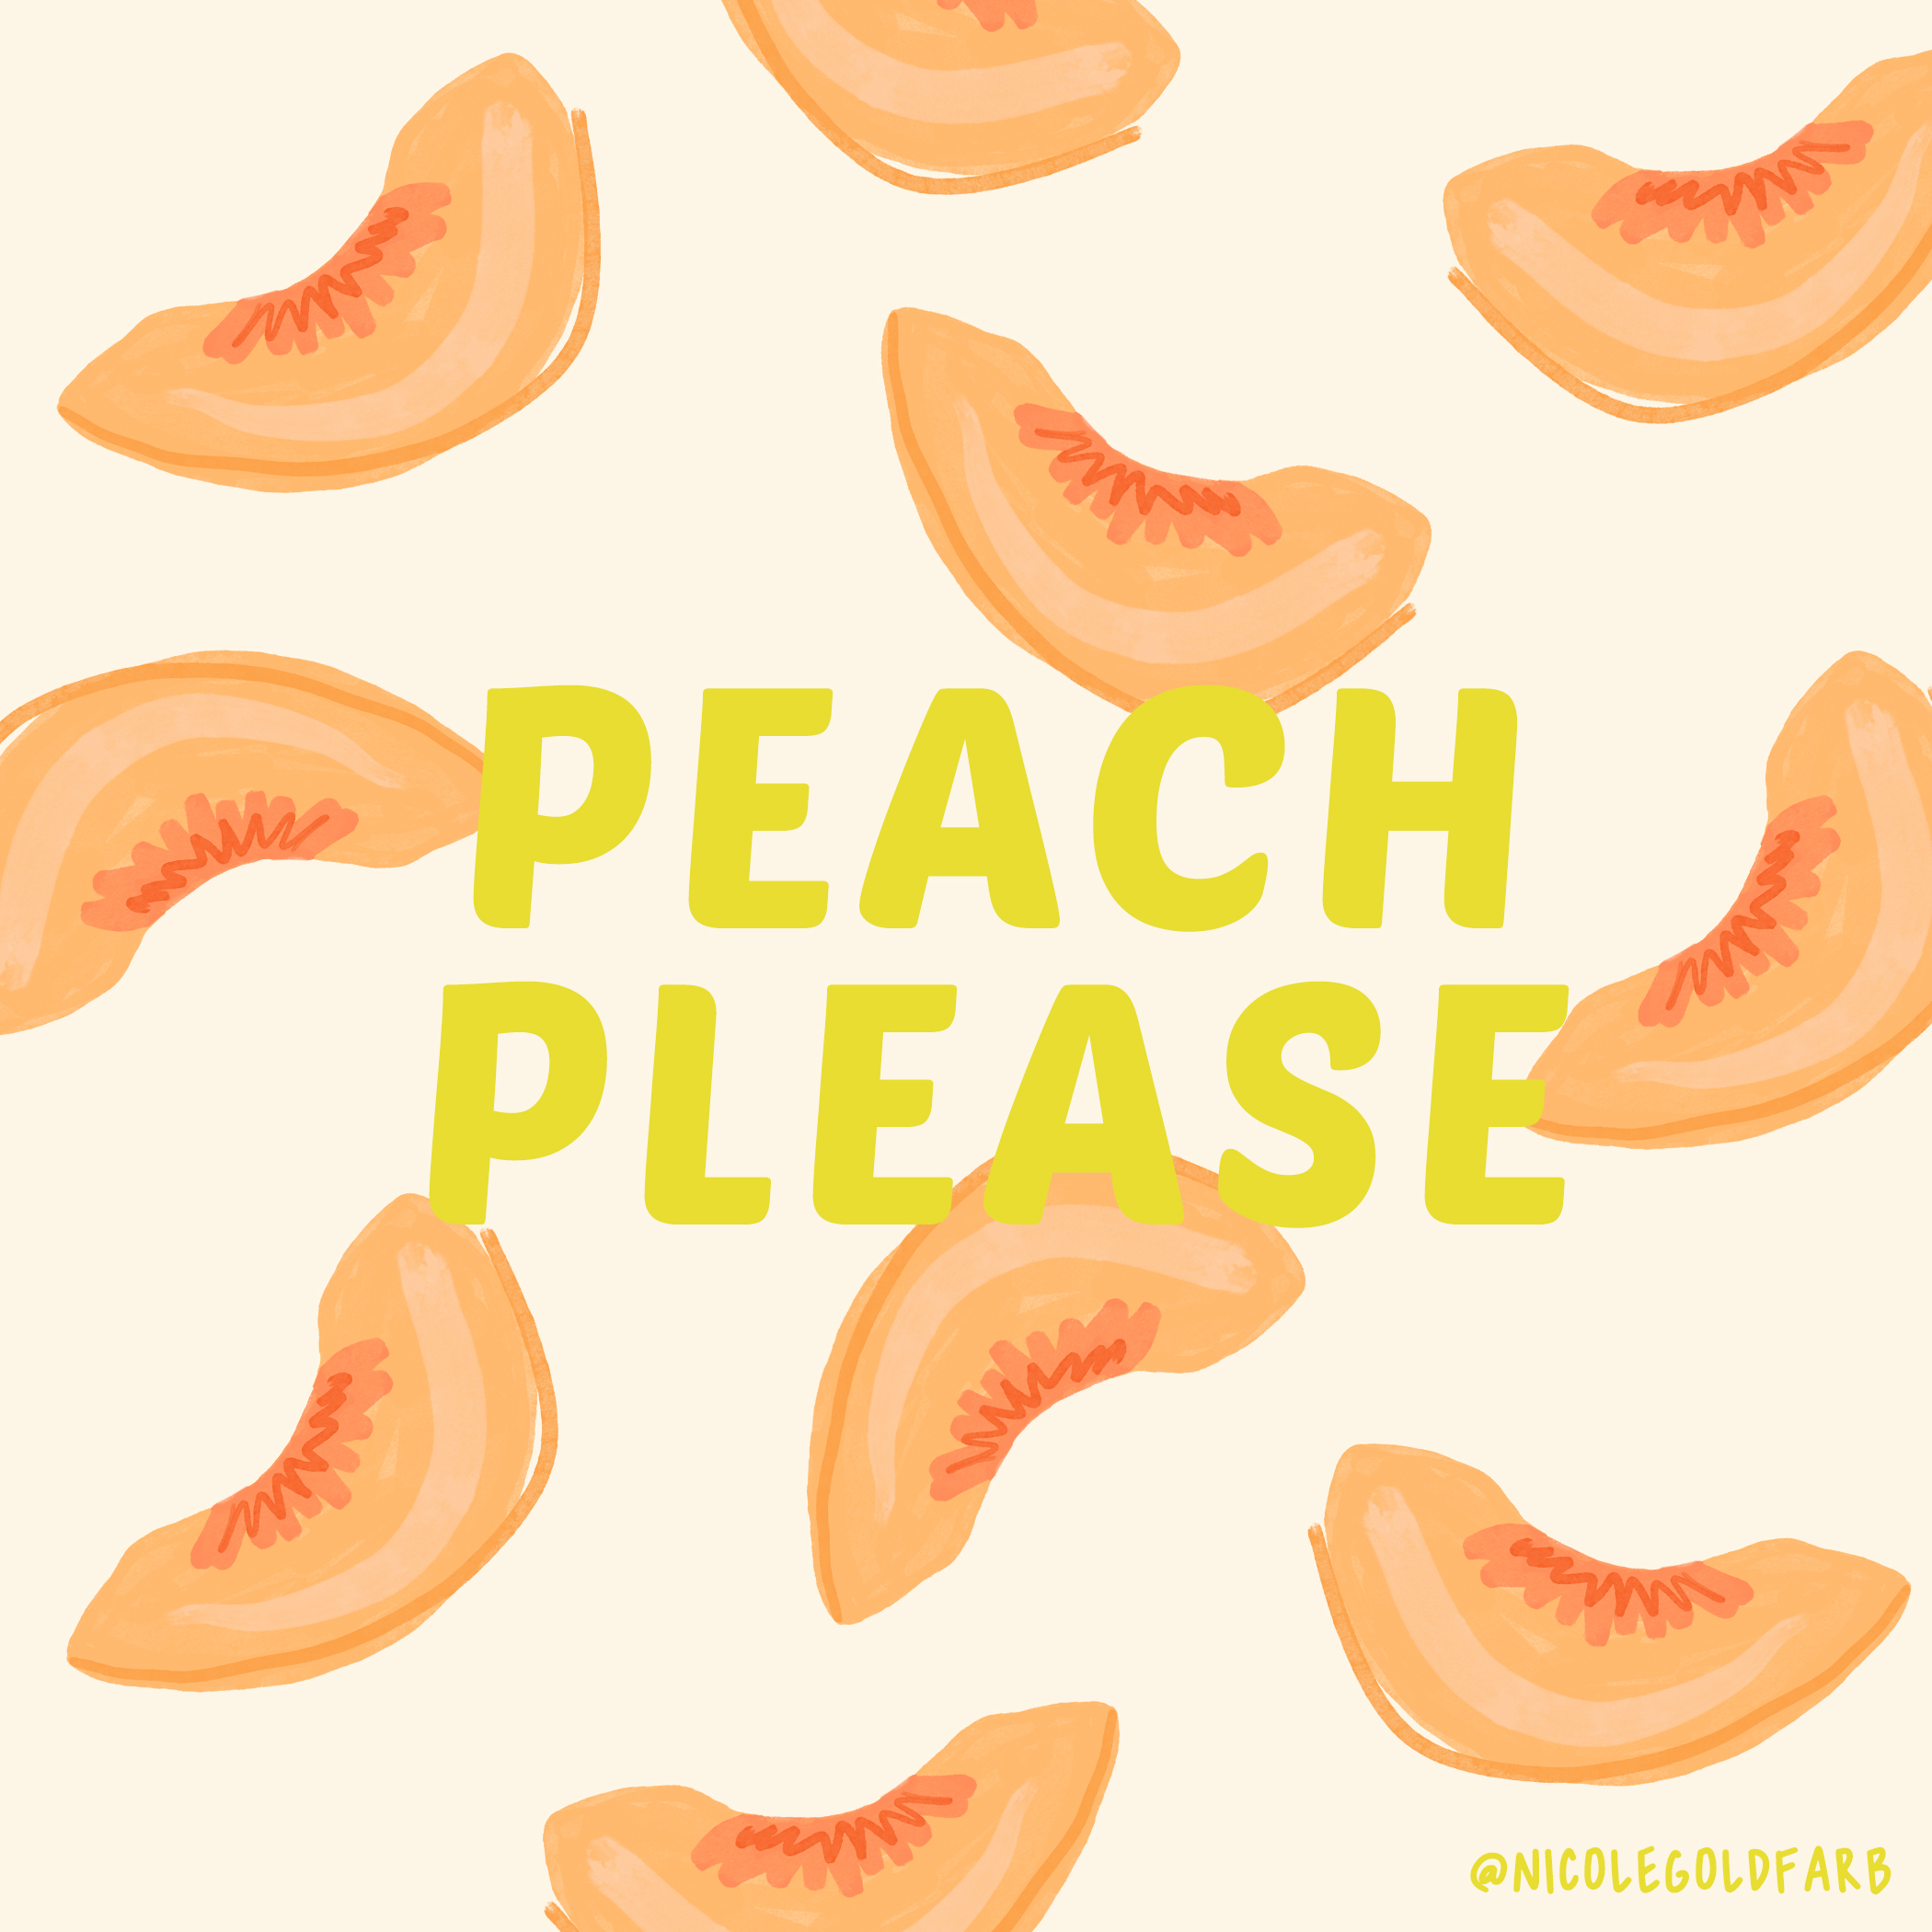 Peach Please.jpg